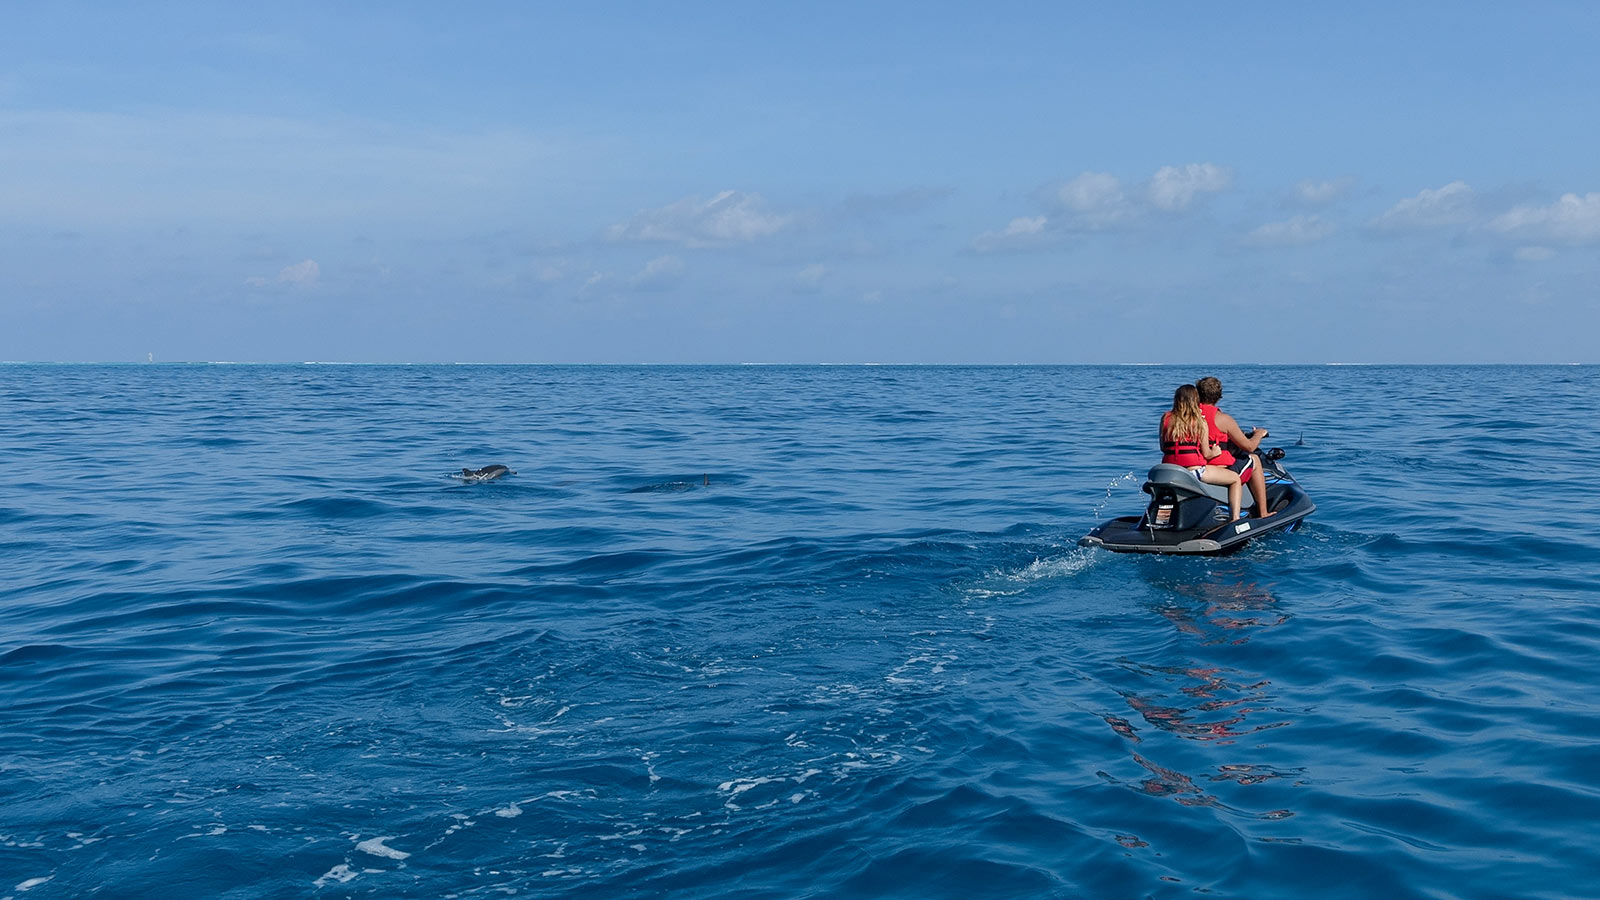 Maldives Water Sports Jet Ski